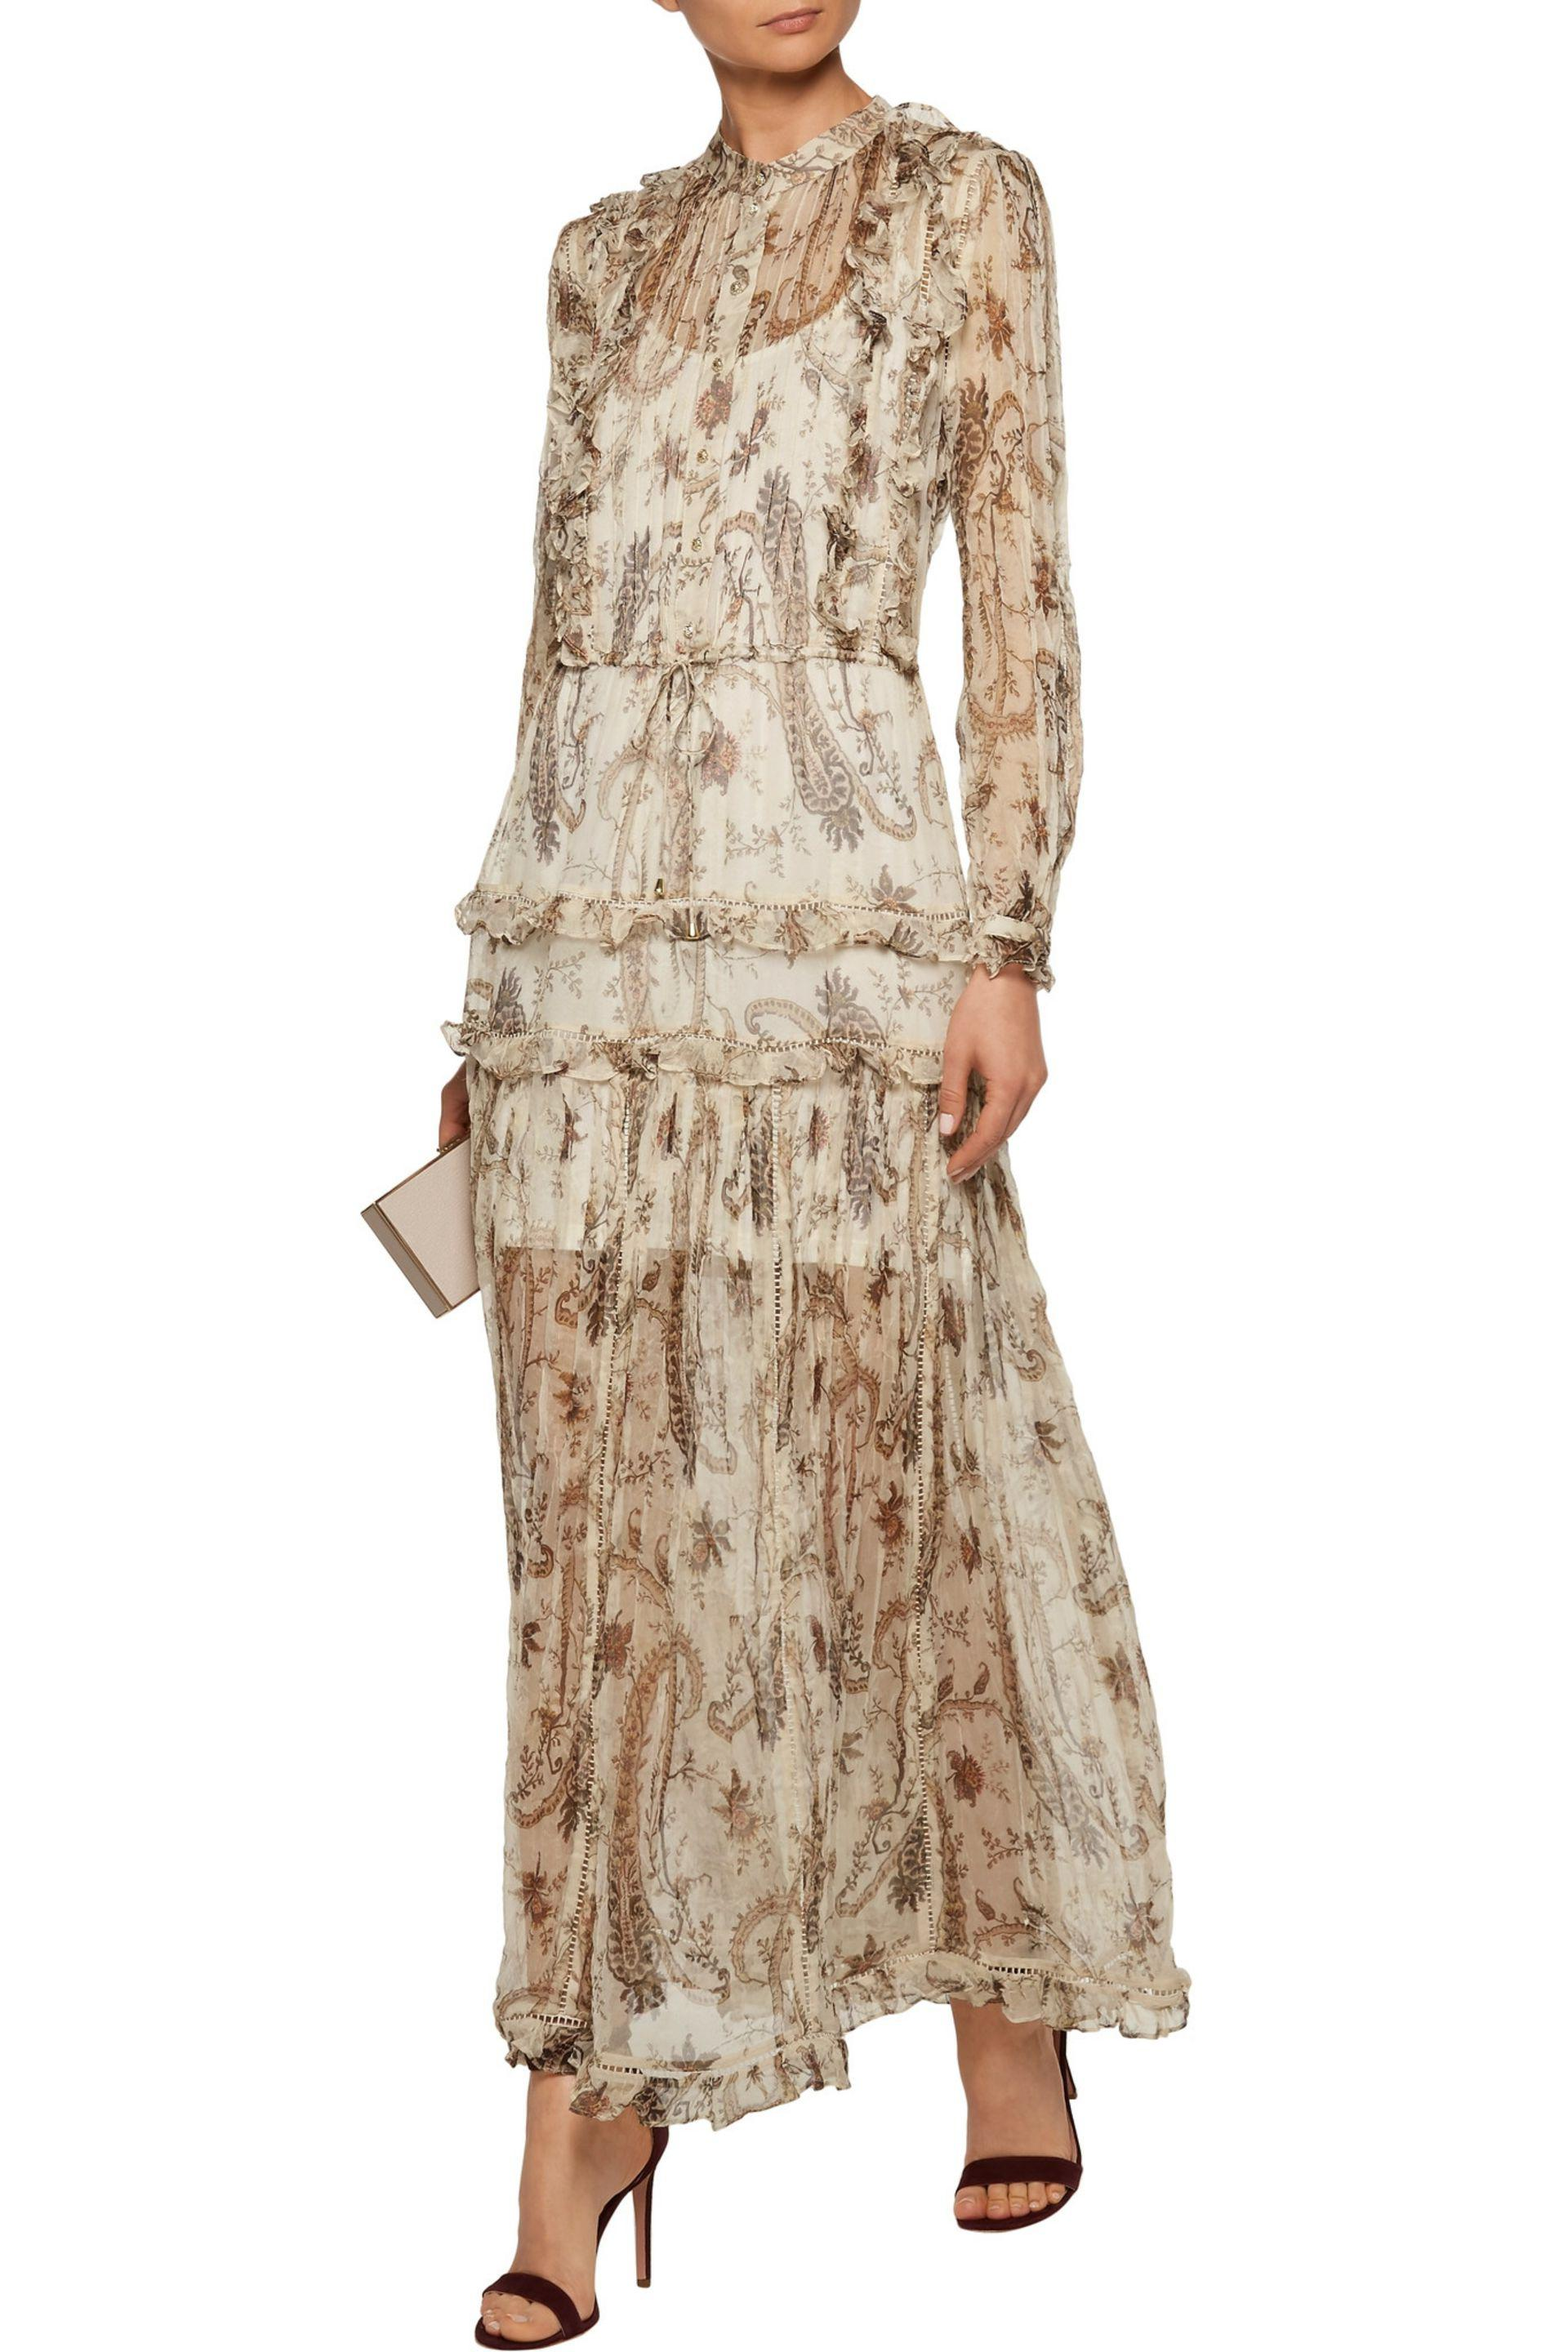 Zimmermann Synthetic Mischief Ruffled Printed Georgette Maxi Dress in Ecru (Natural)